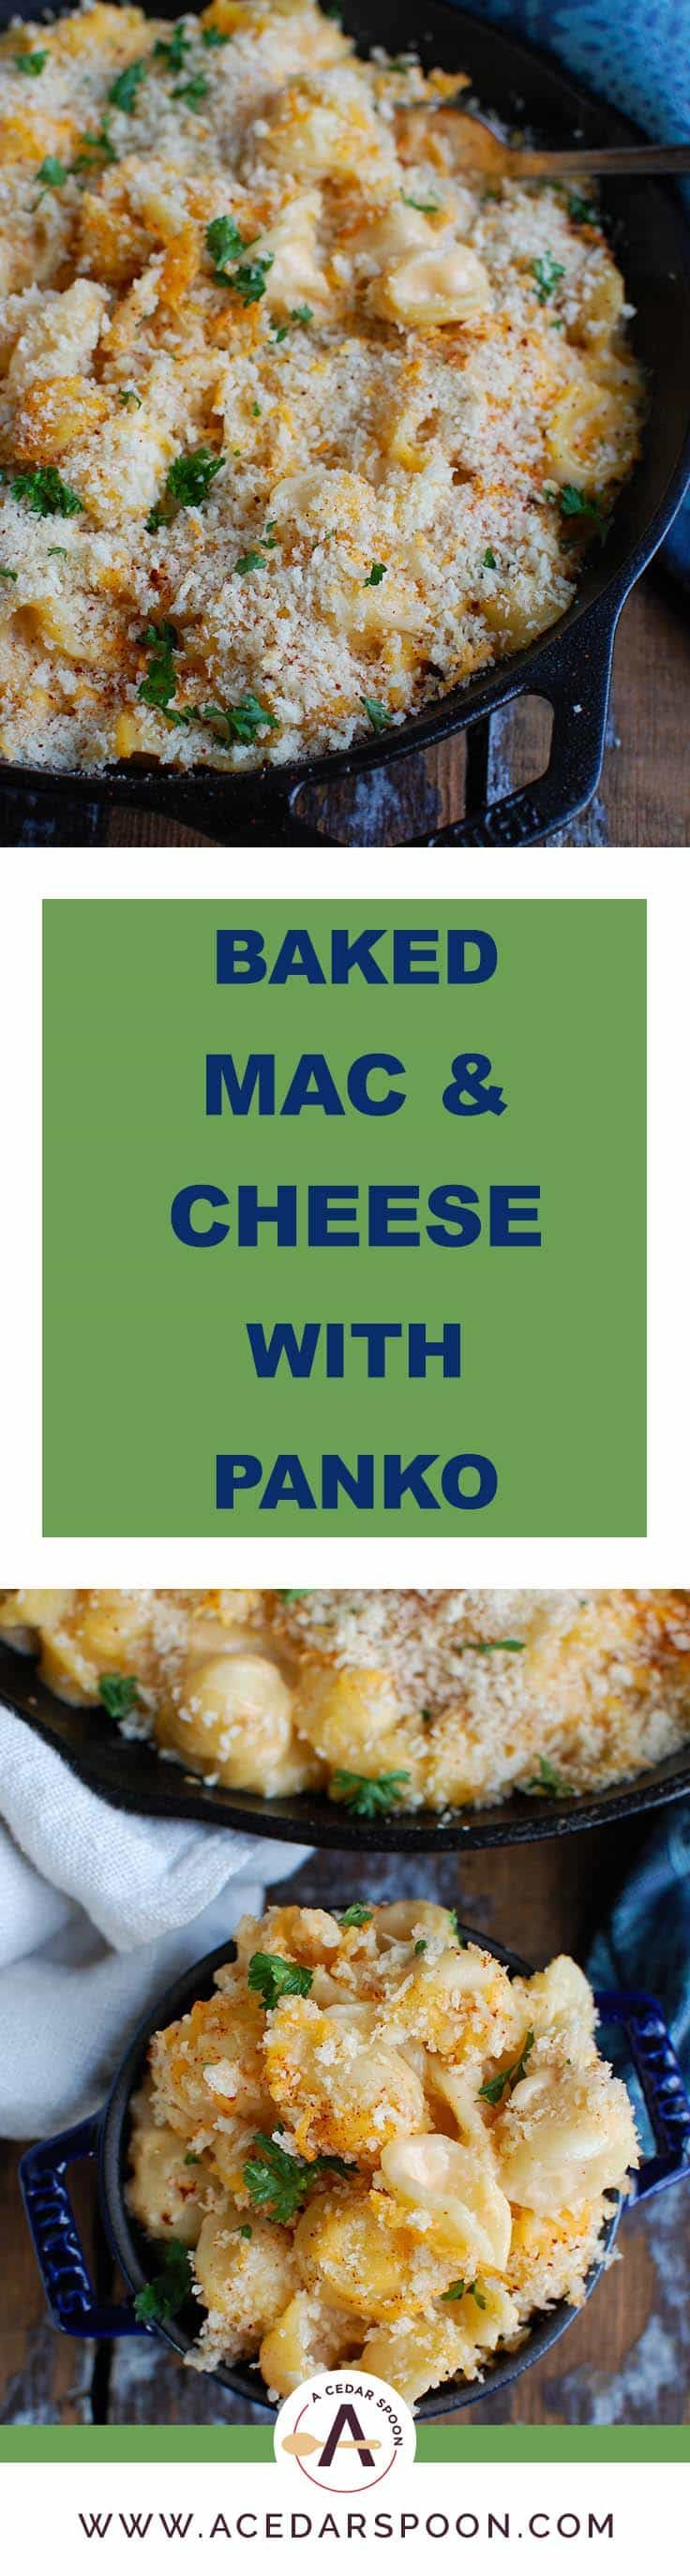 Baked Mac and Cheese with Panko Breadcrumbs #bakedmacandcheeserecipe